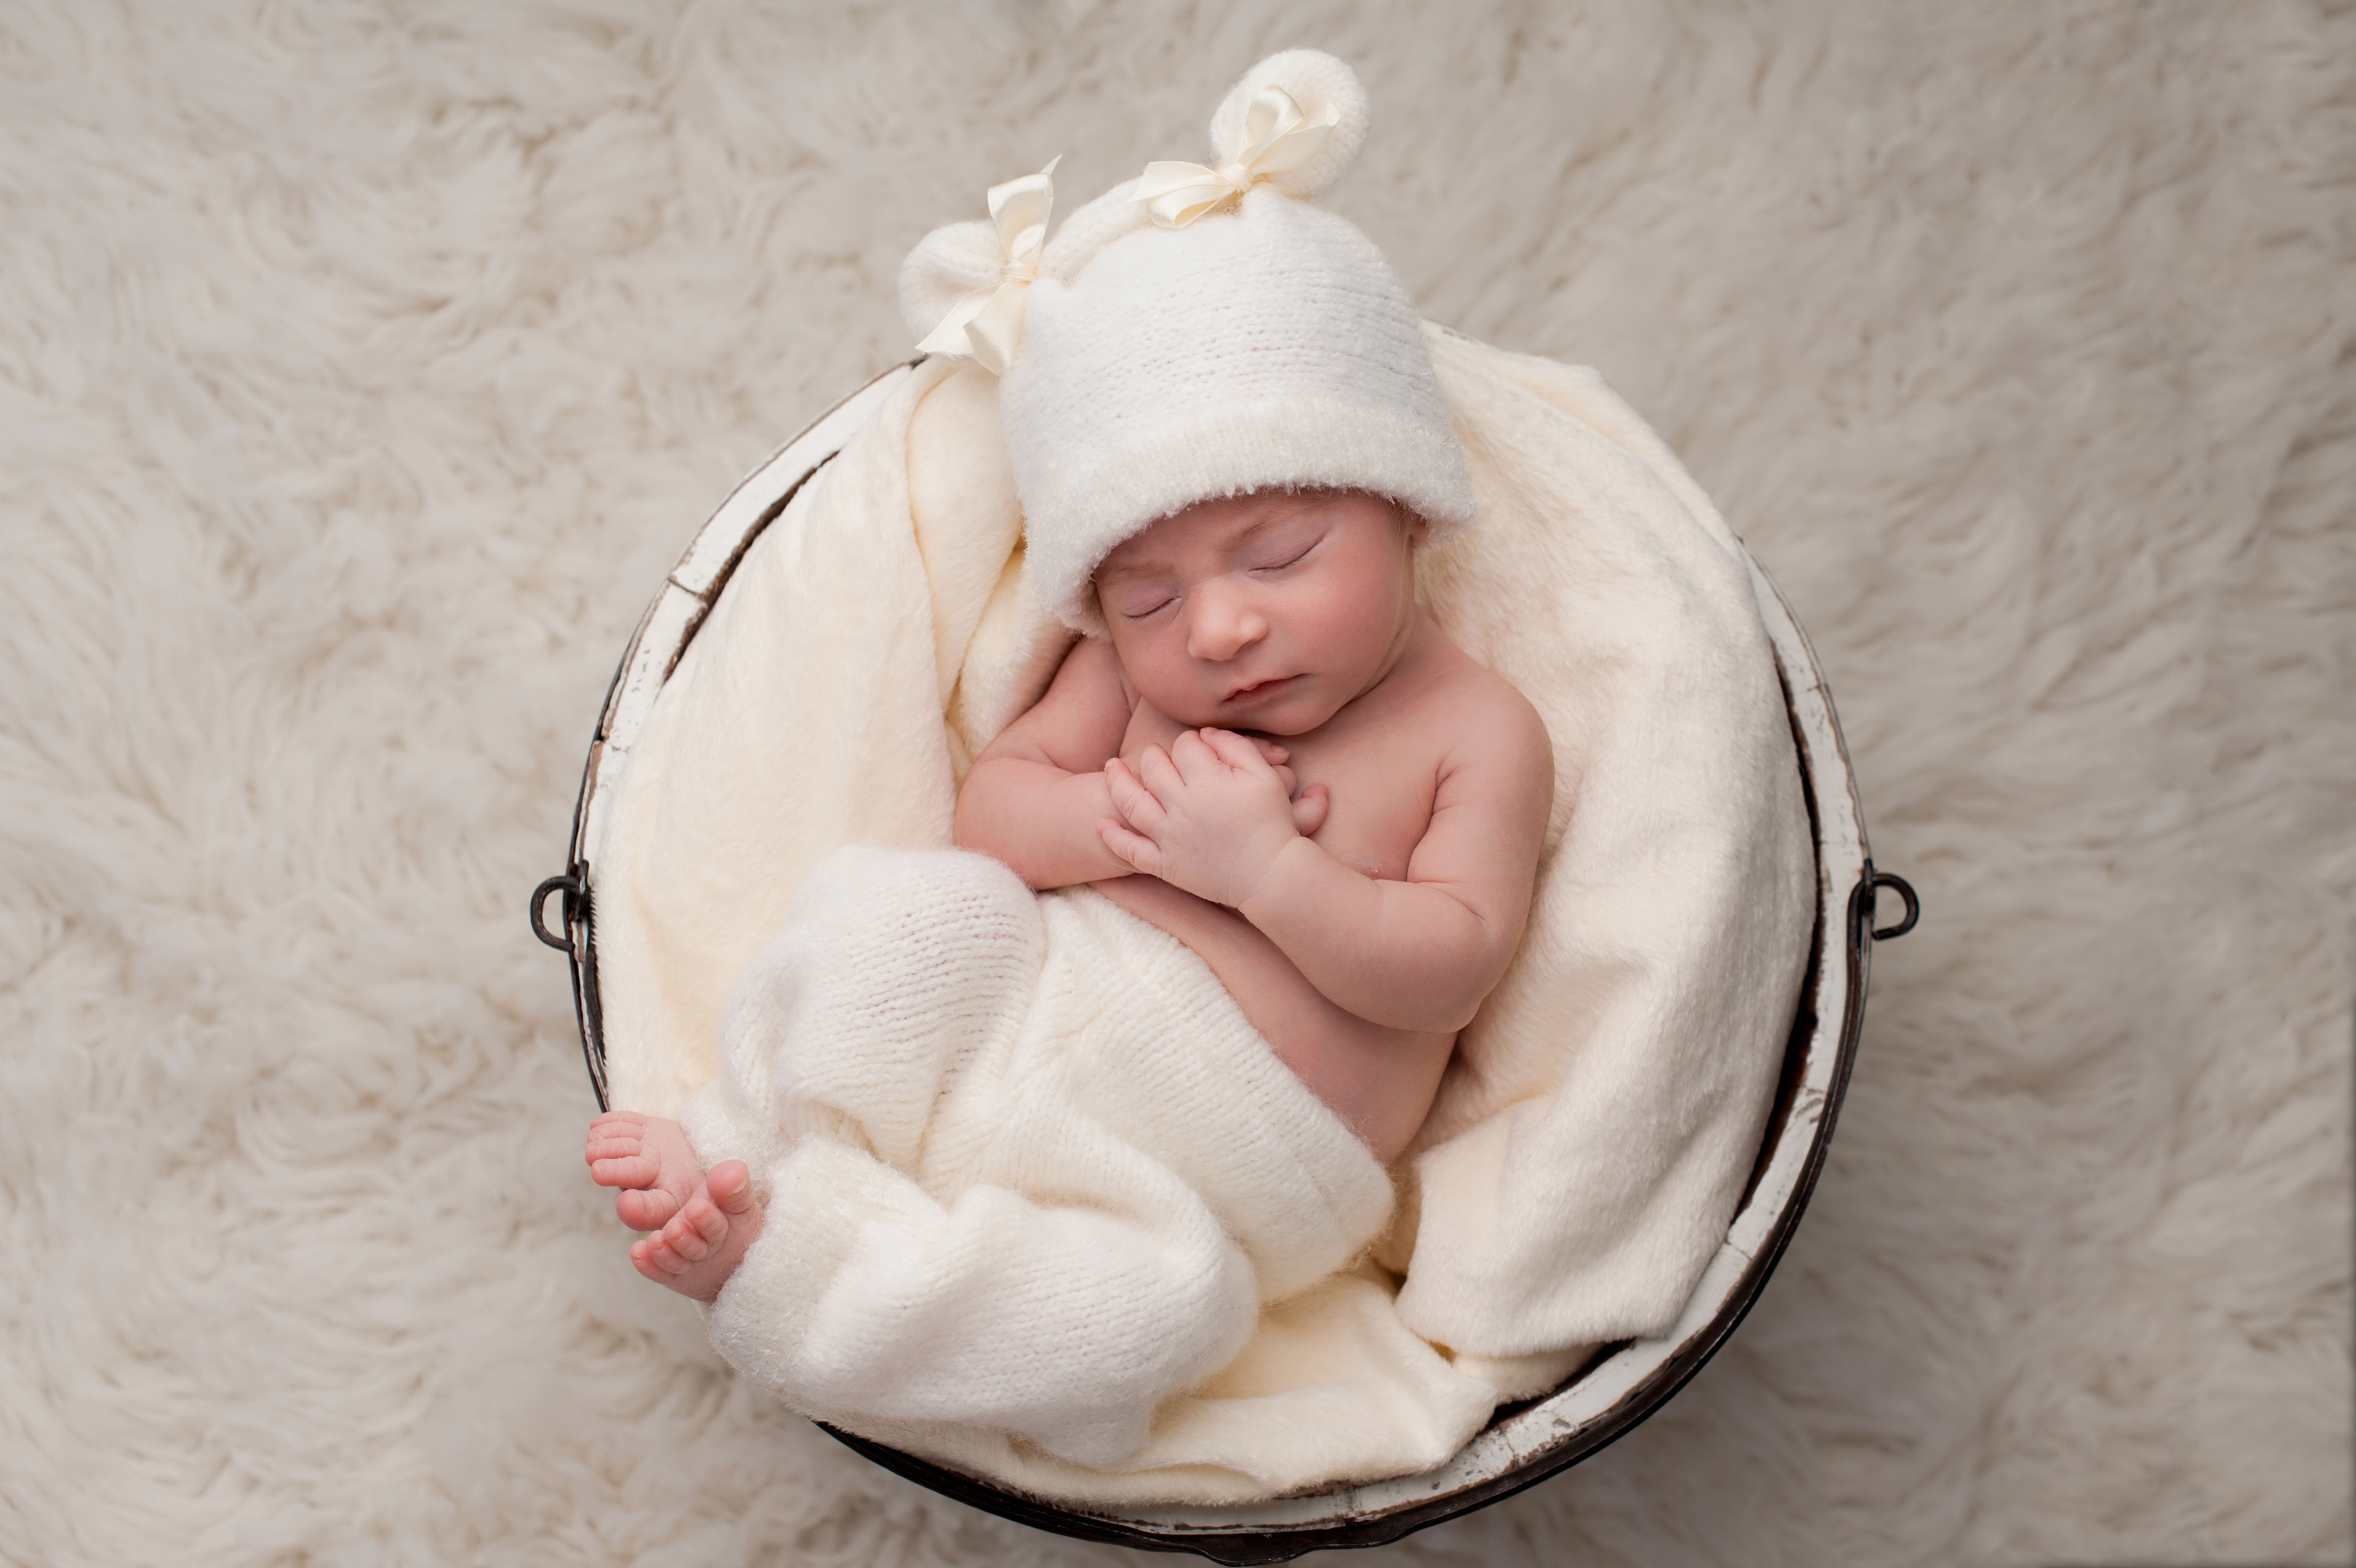 A sleeping nine day old newborn baby girl sleeping in a white wooden bucket. She is wearing upcycled pants and a matching hat.